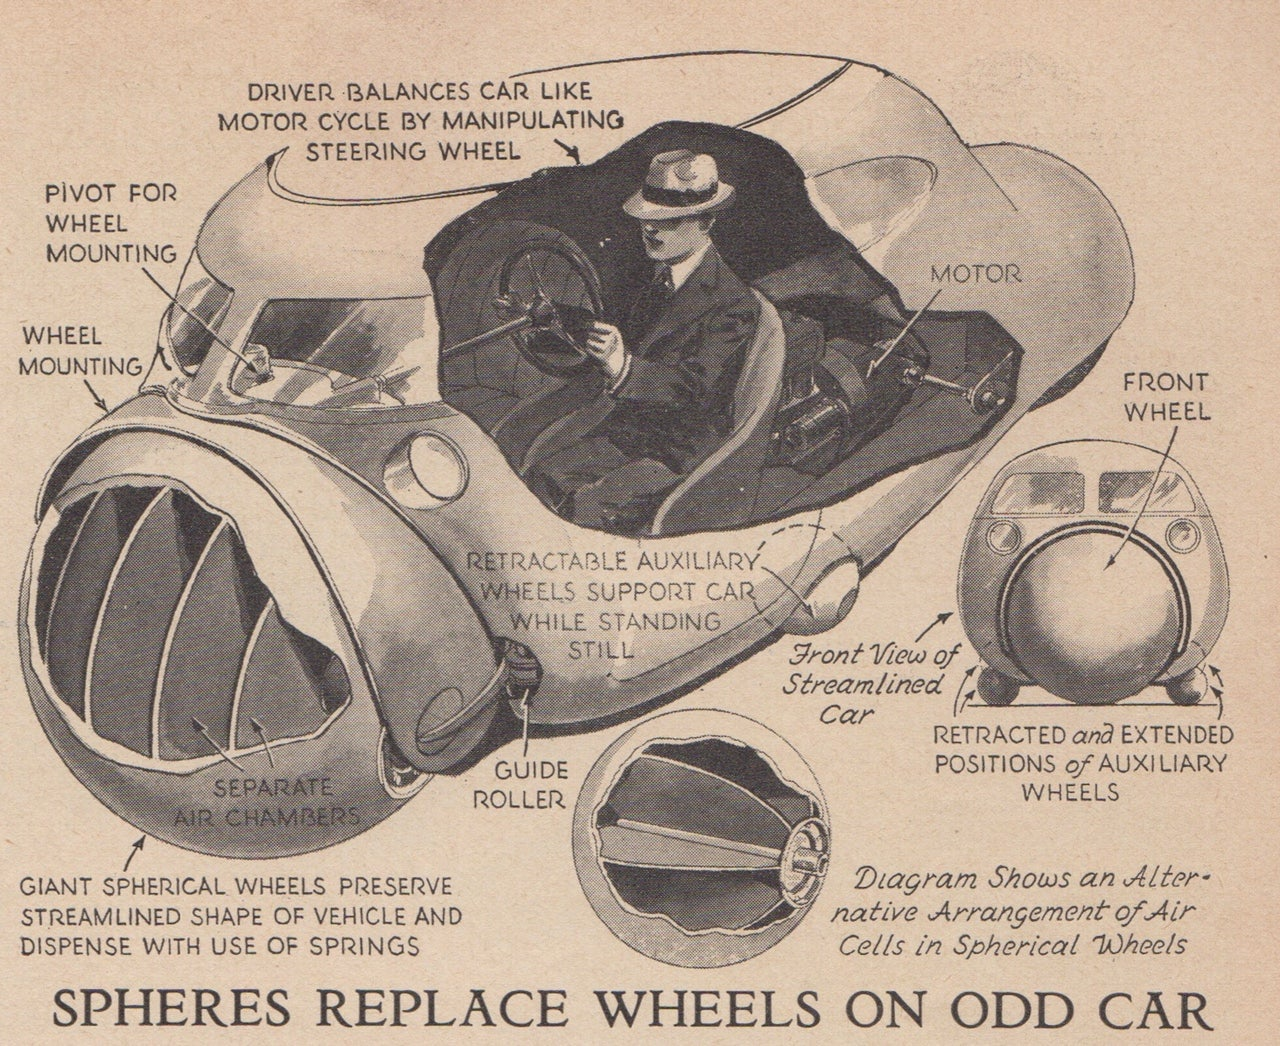 This 1935 Car Of The Future Had Huge Spheres Instead Of Wheels